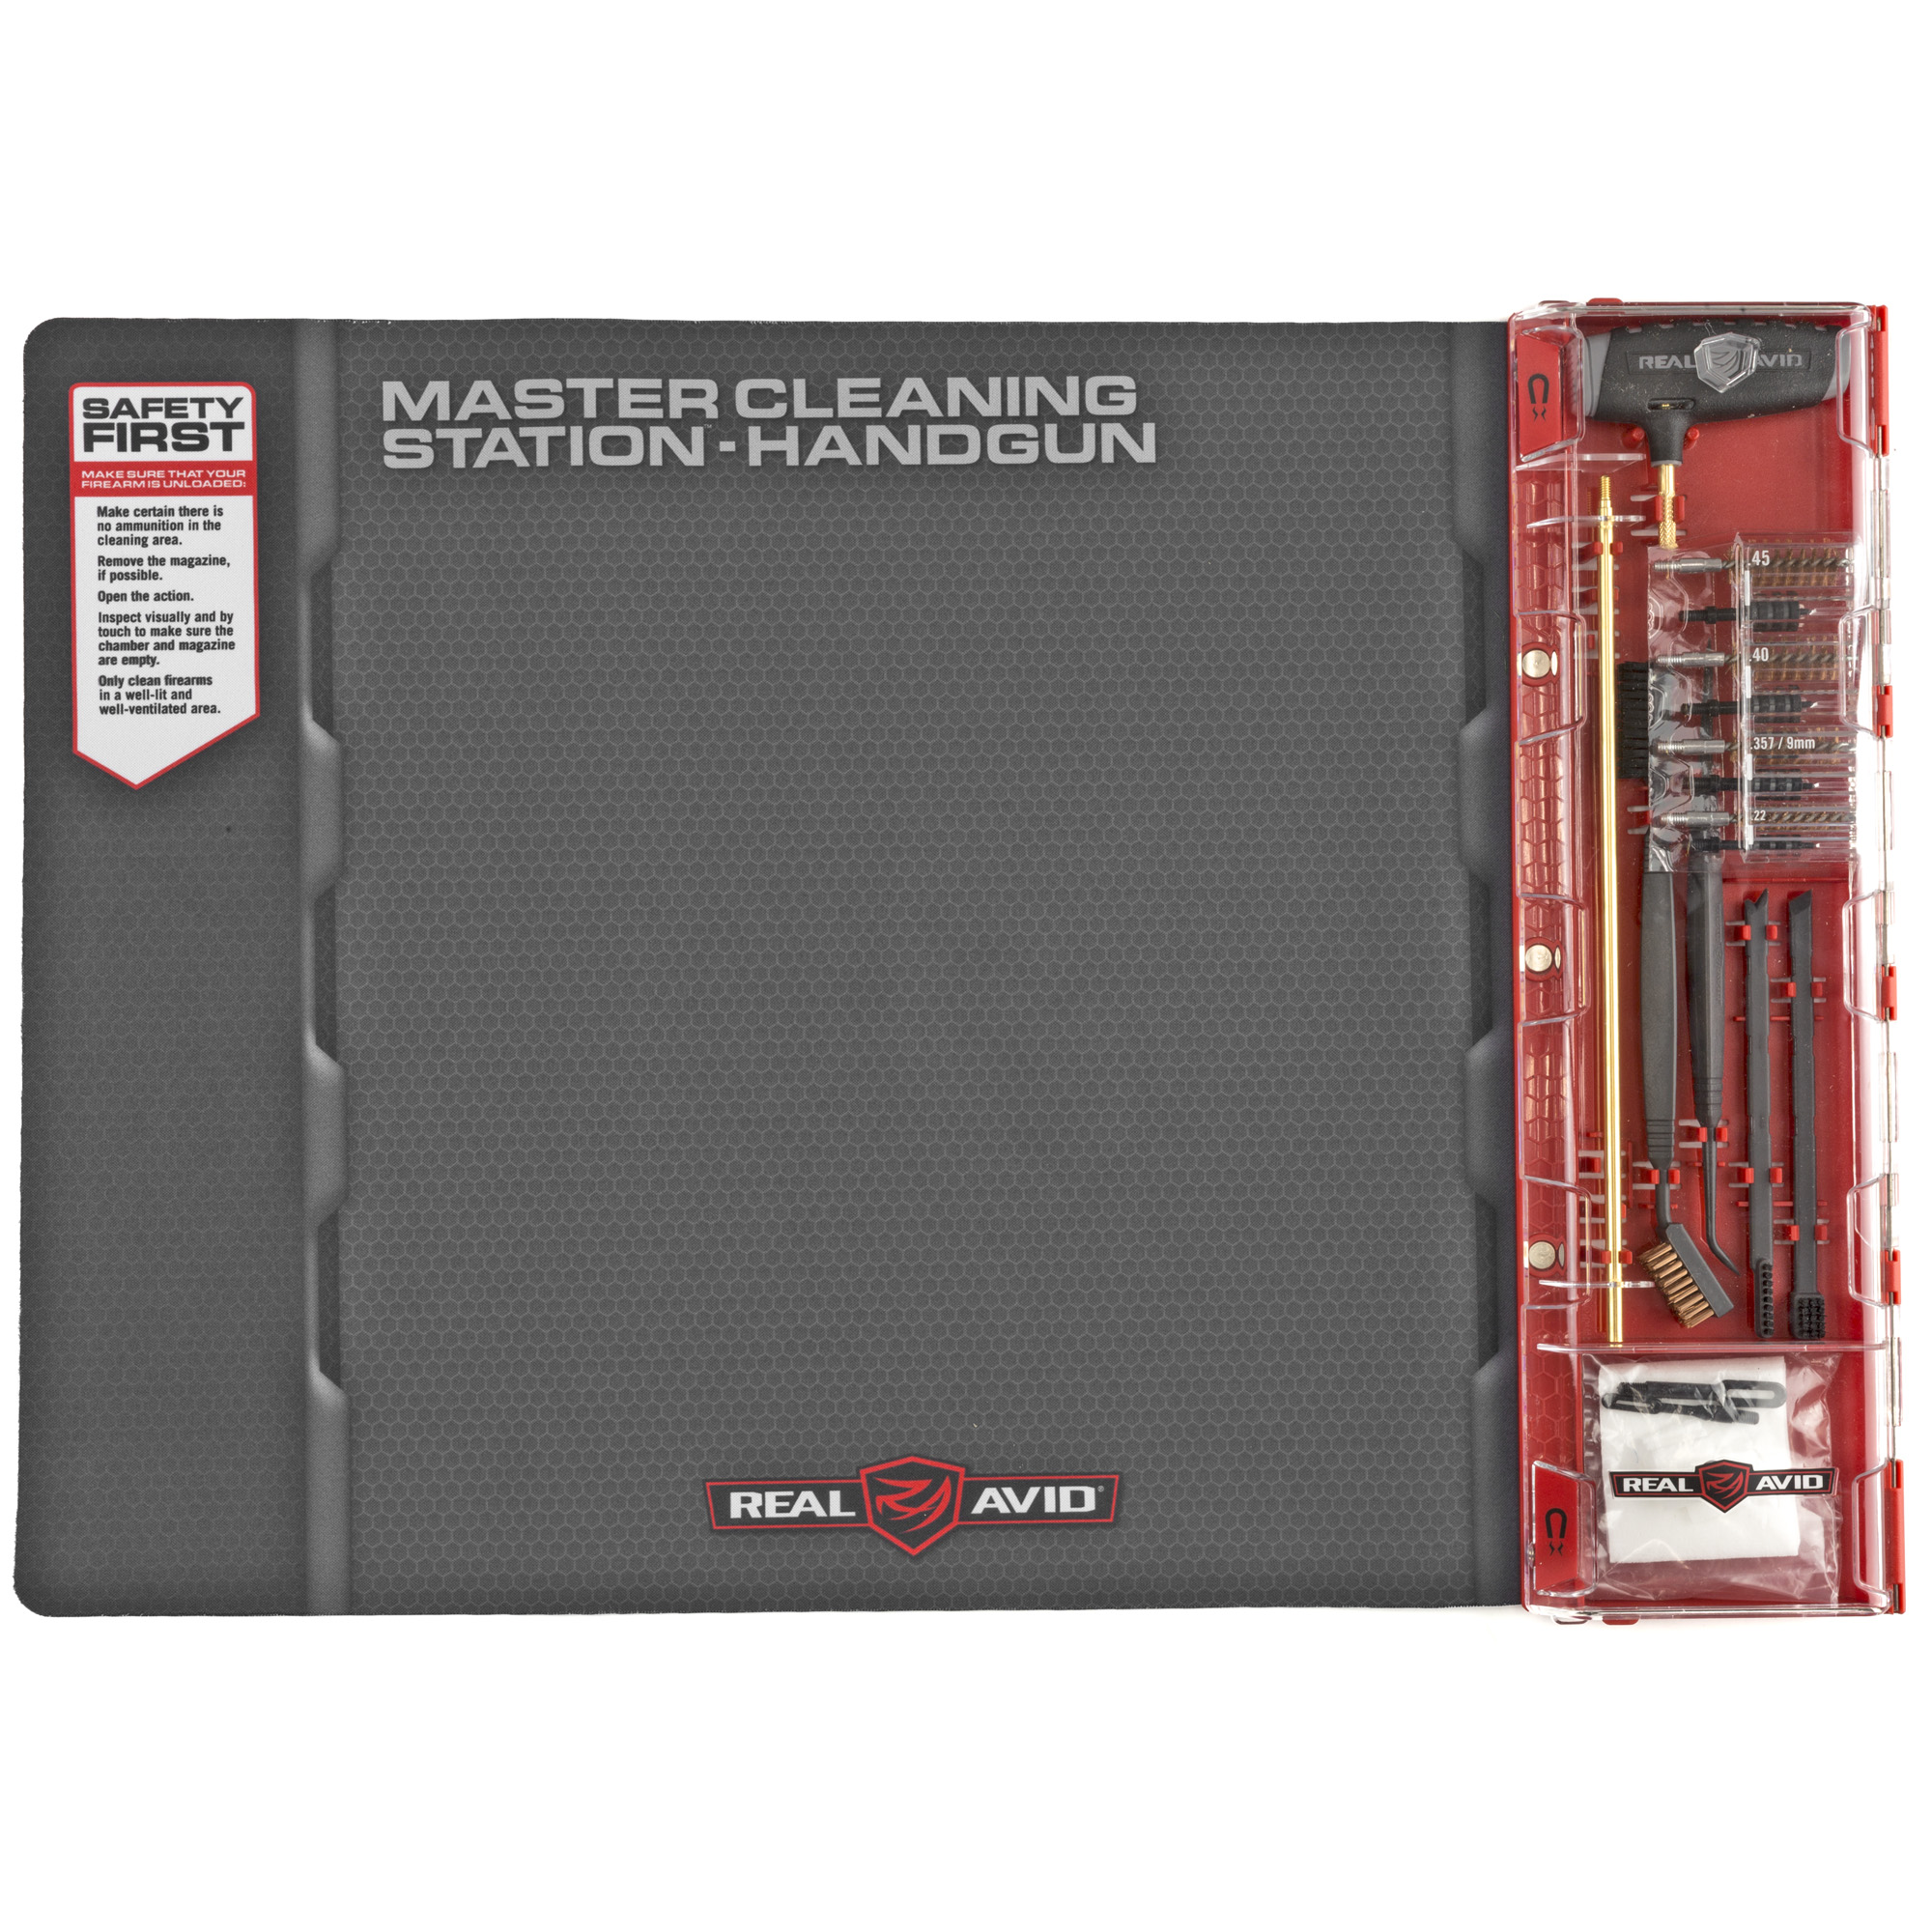 "Upgrade your cleaning experience with the world's first handgun Master Cleaning Station. Designed for comprehensive cleaning of .22 / 9mm / .357 / .38 / .40 / .45 caliber handguns. It combines a Next-Gen cleaning mat with an intelligently designed cleaning kit filled with an extensive set of handgun specific cleaning tools. It keeps easy-to-lose gun parts organized while you work. It provides a huge work area for a completely disassembled gun"" yet rolls up for compact storage in the included bag."